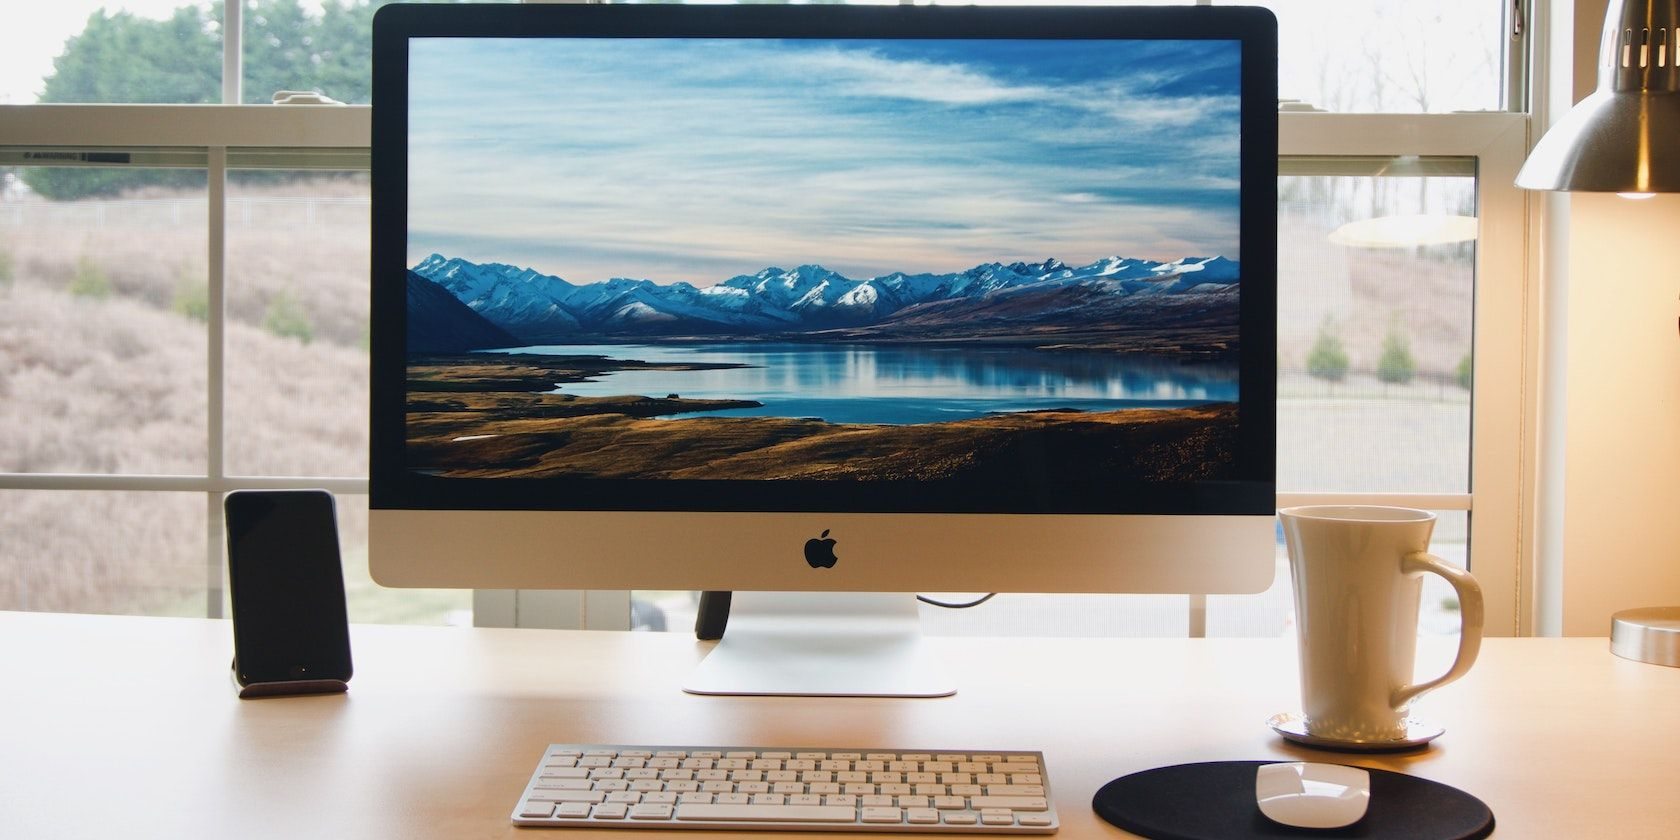 iMac Is Due To Receive Its First Design Upgrade Since 2012